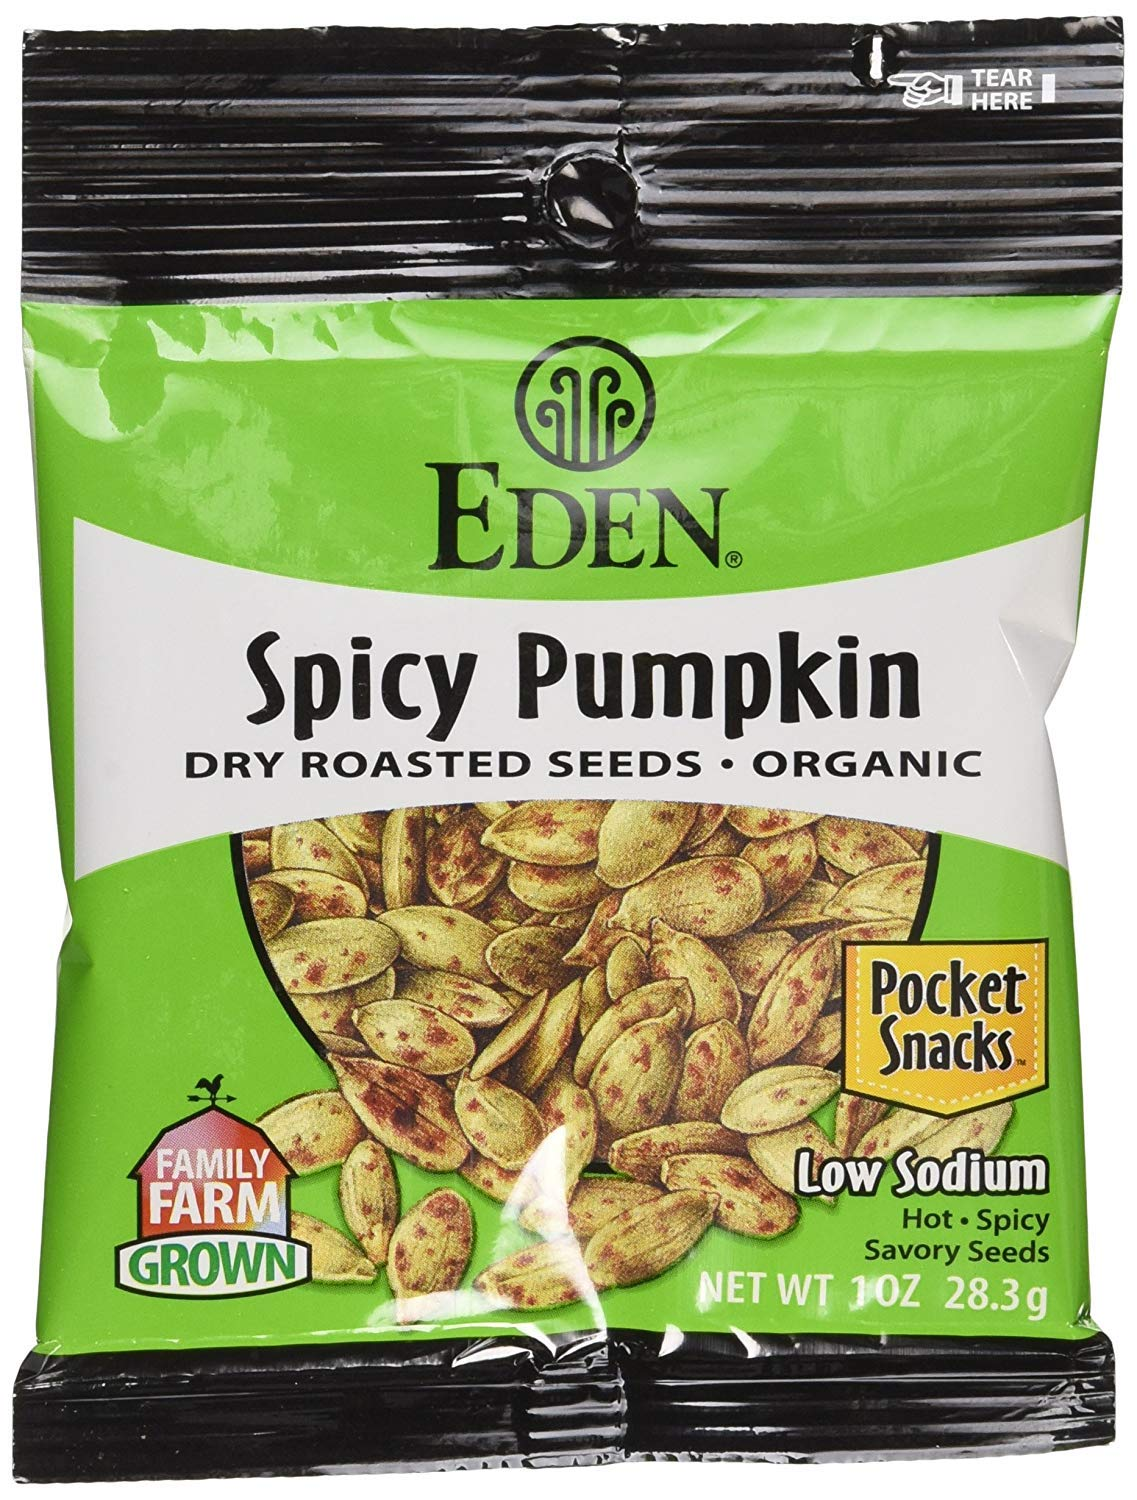 Eden Organic Spicy Pumpkin Seeds, Dry Roasted, Pocket Snacks, 1 Ounce (Pack of 36) by Eden